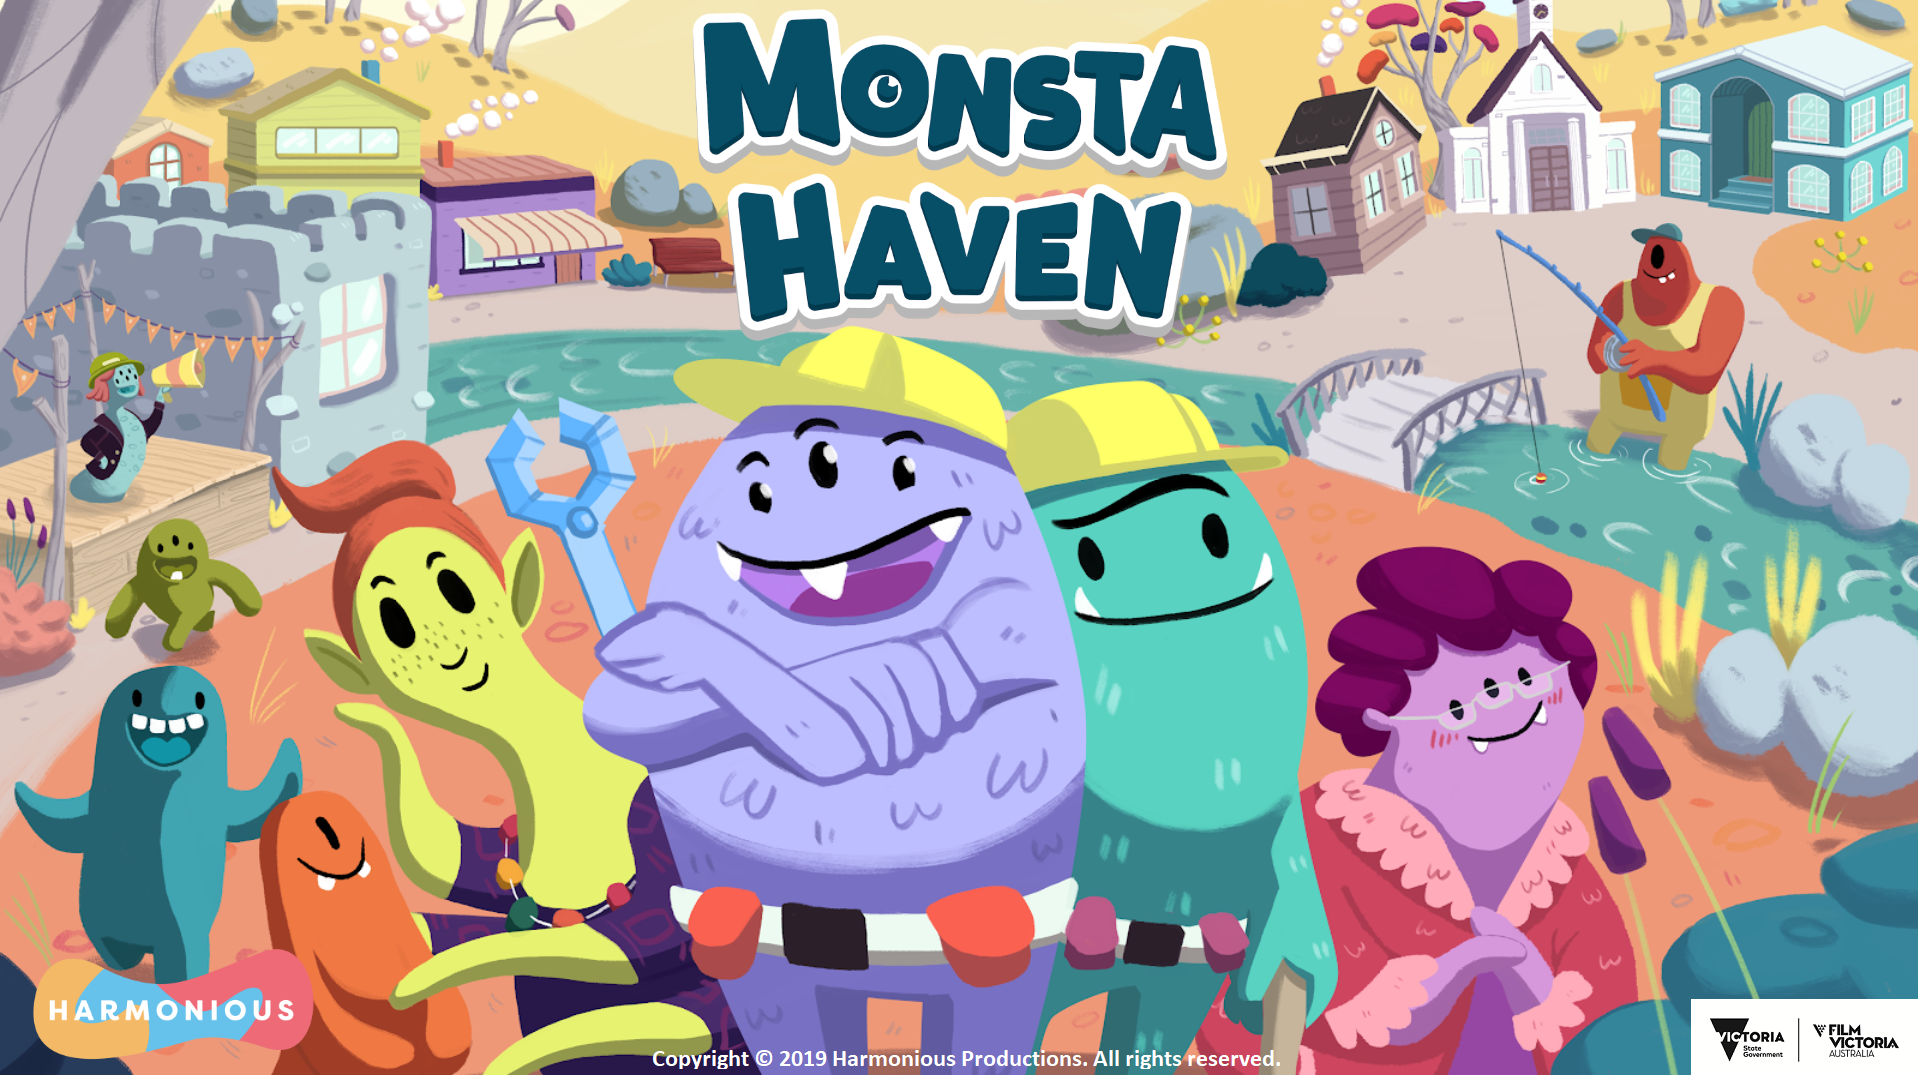 Monsta Haven Prototype - To hone our skills as game developers, Harmonious created an adorable prototype for a multiplayer building simulator about Monstas finding a place to call home. This was worked on over the course of several months and is an unreleased prototype. This is a project the team works on during downtime between other projects.